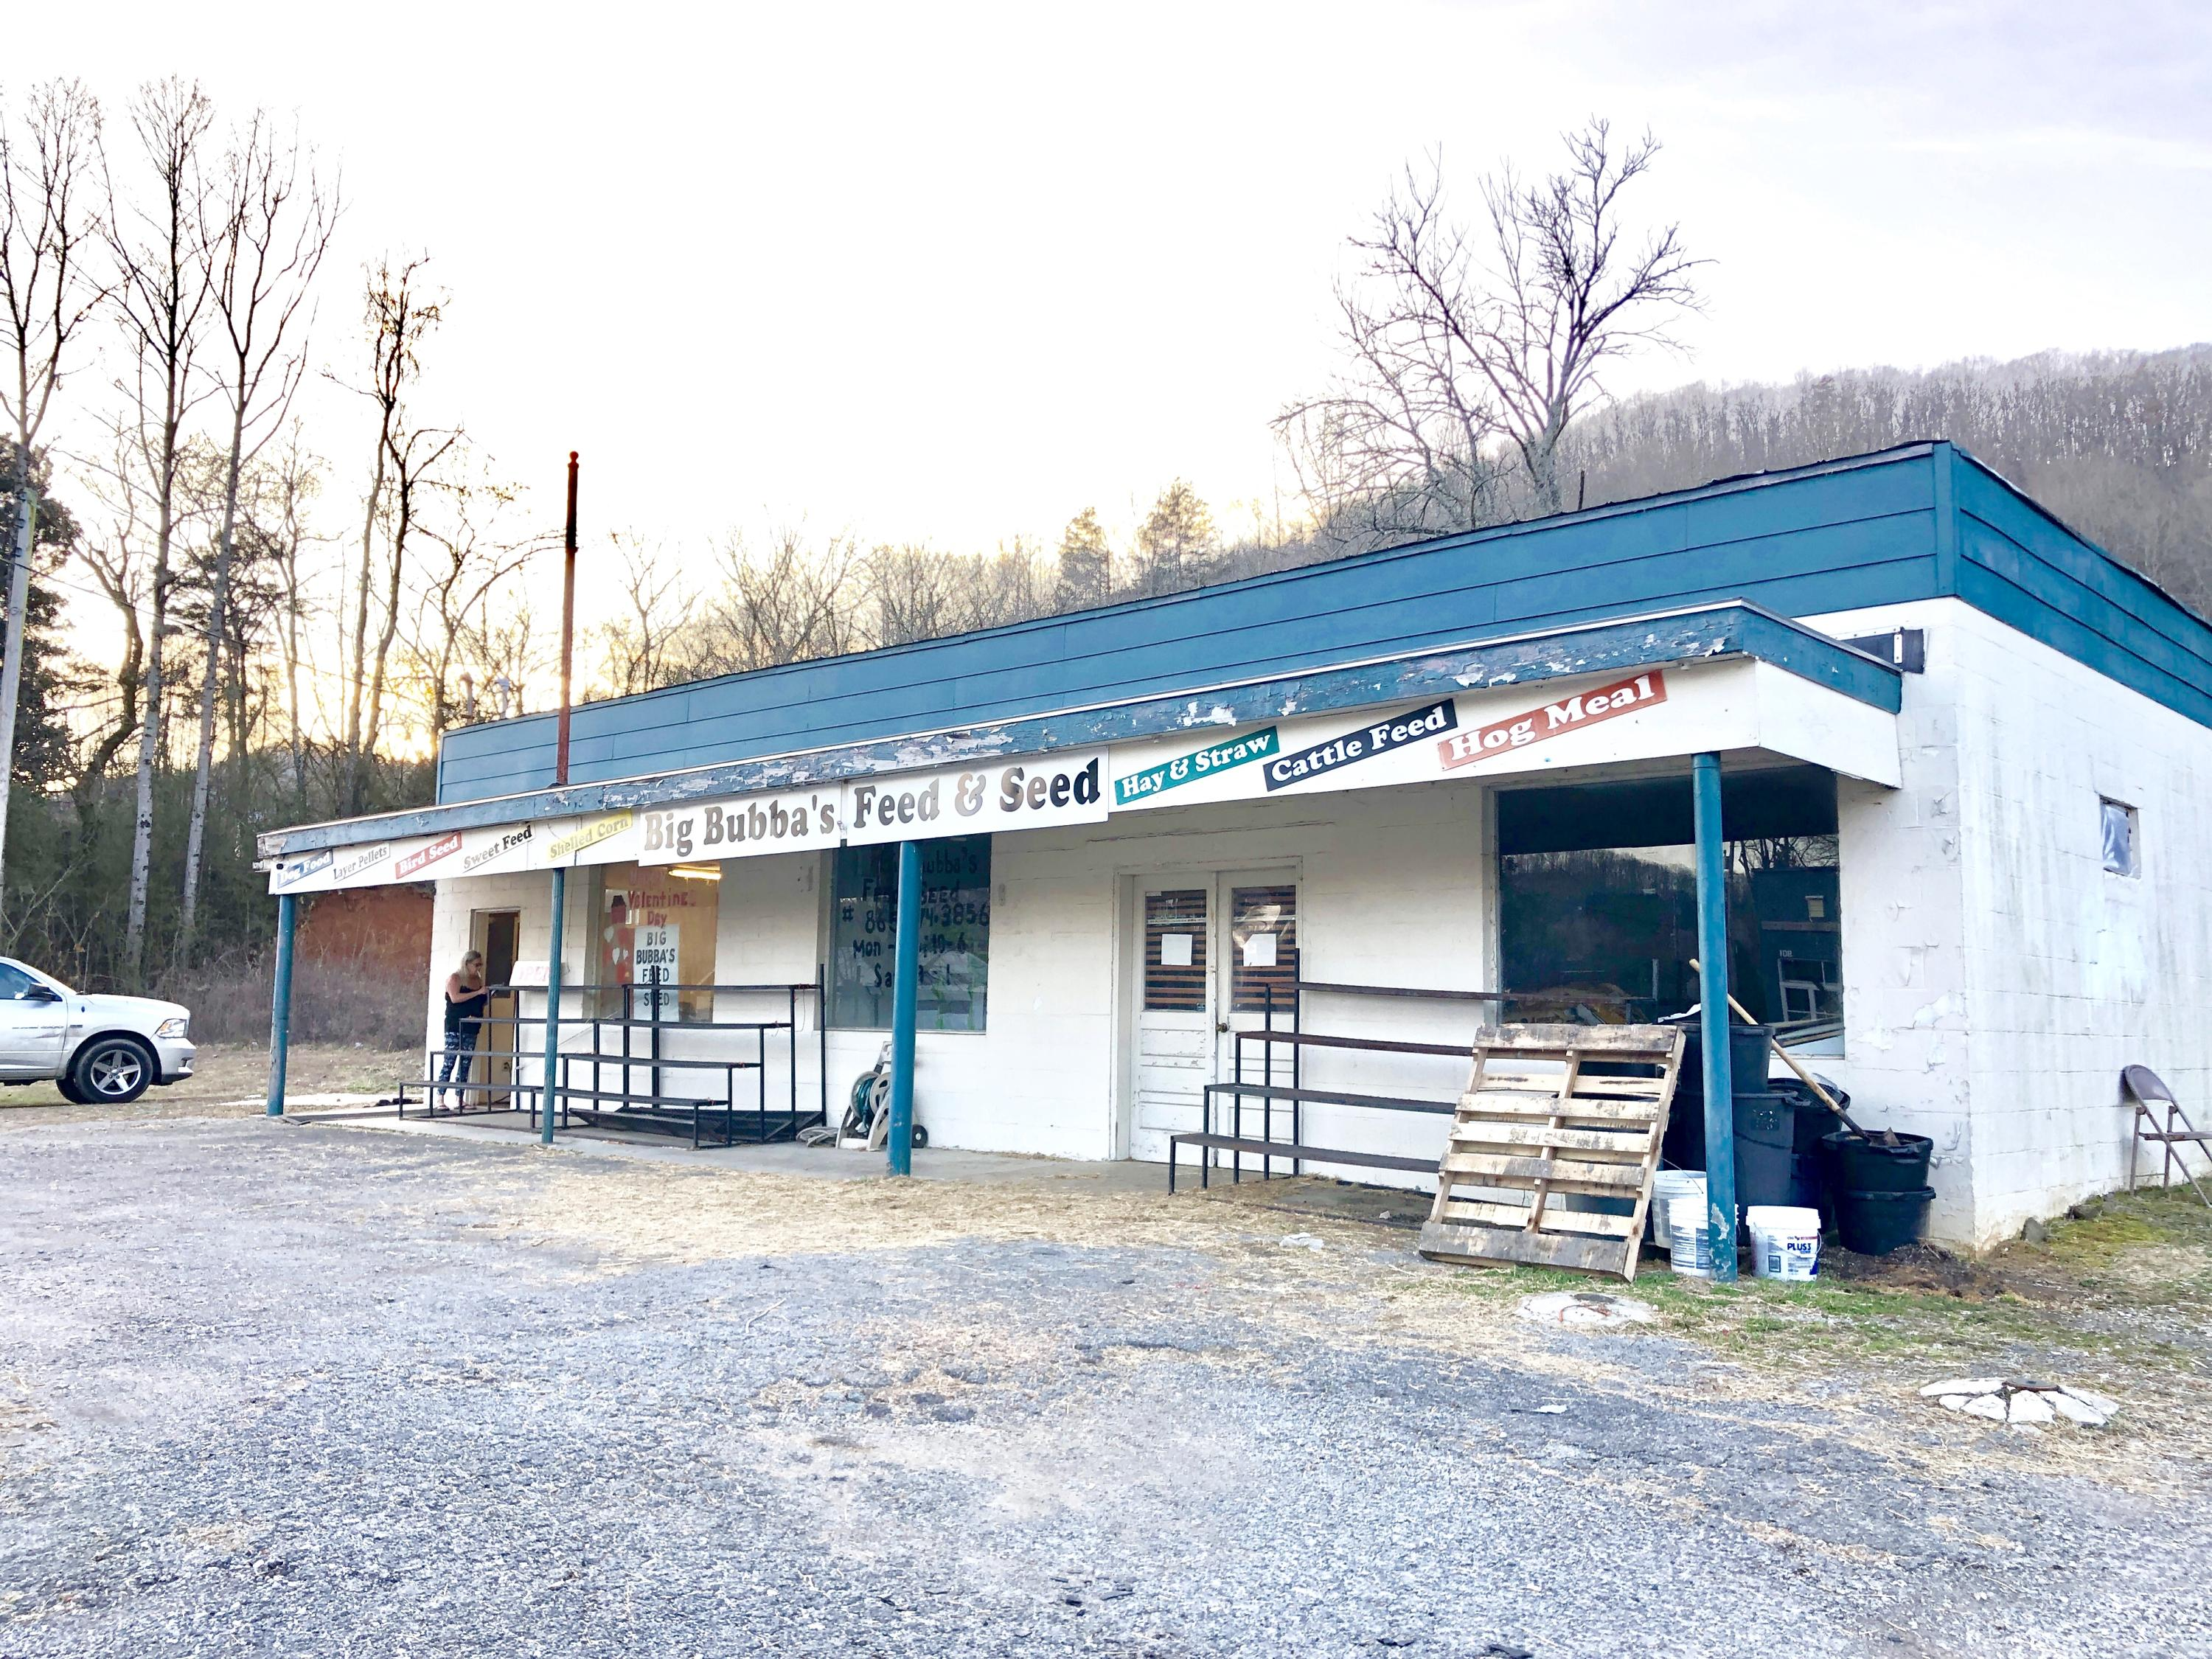 904 Tri County Blvd Blvd, Oliver Springs, Tennessee 37840, ,Commercial,For Sale,Tri County Blvd,1070058